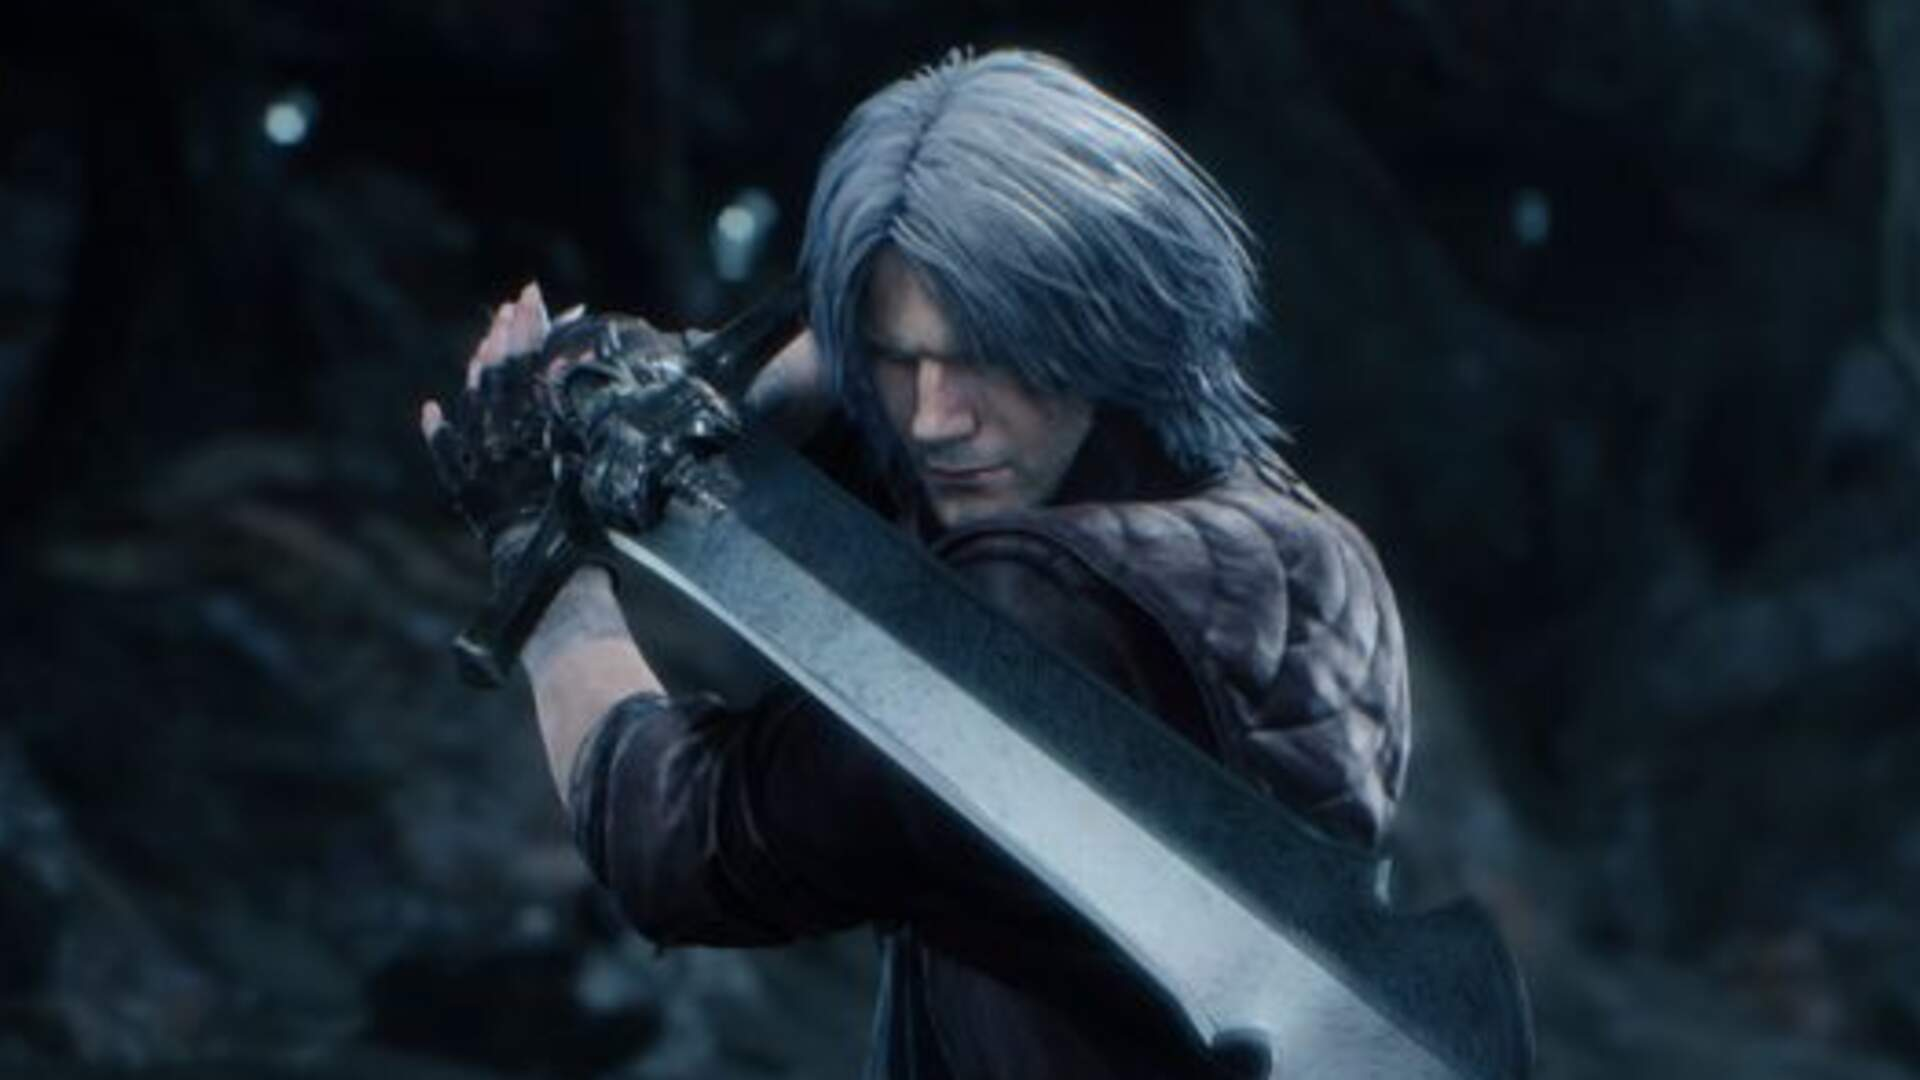 Devil May Cry 5 Demo Coming Exclusively to Xbox One Tomorrow Based on New Leak